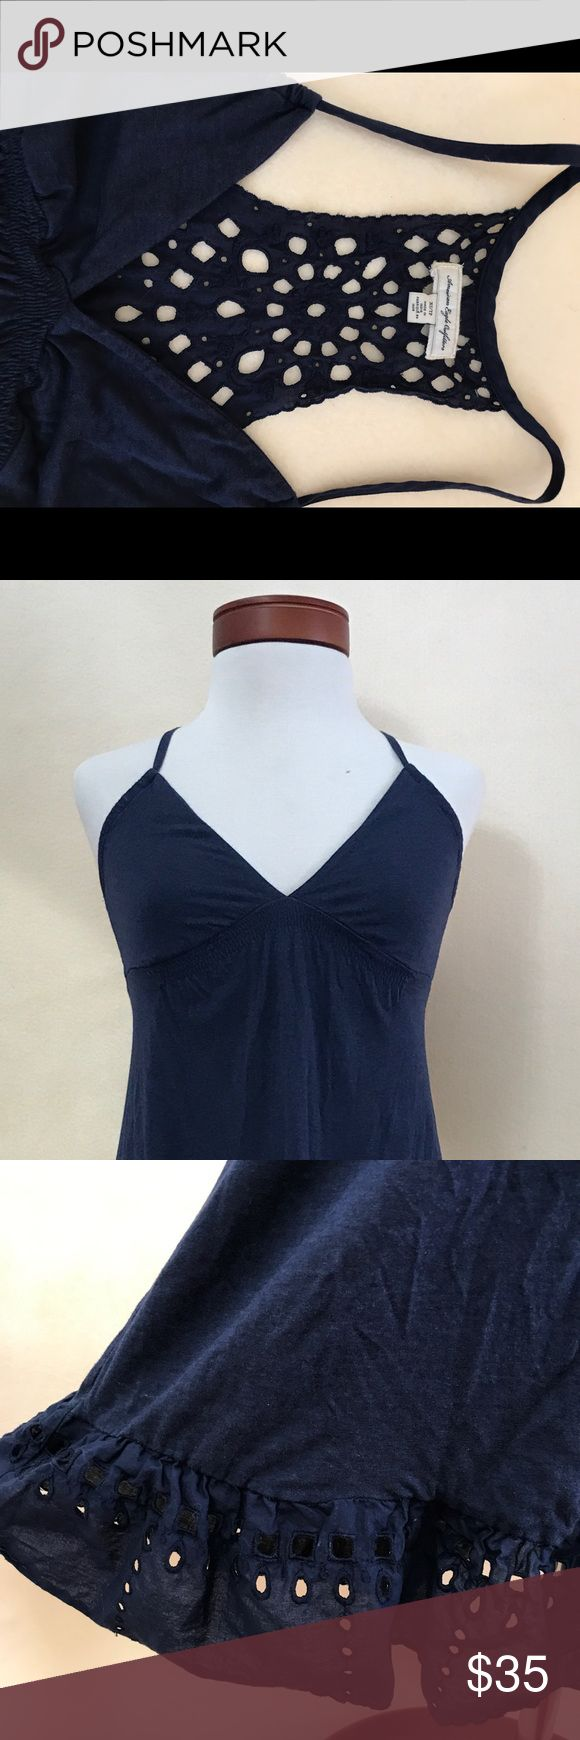 American Eagle Outfitters Blue summer dress Very cute XS summer dress or swimsuit cover. American Eagle Outfitters Dresses Backless #americaneagleoutfitters